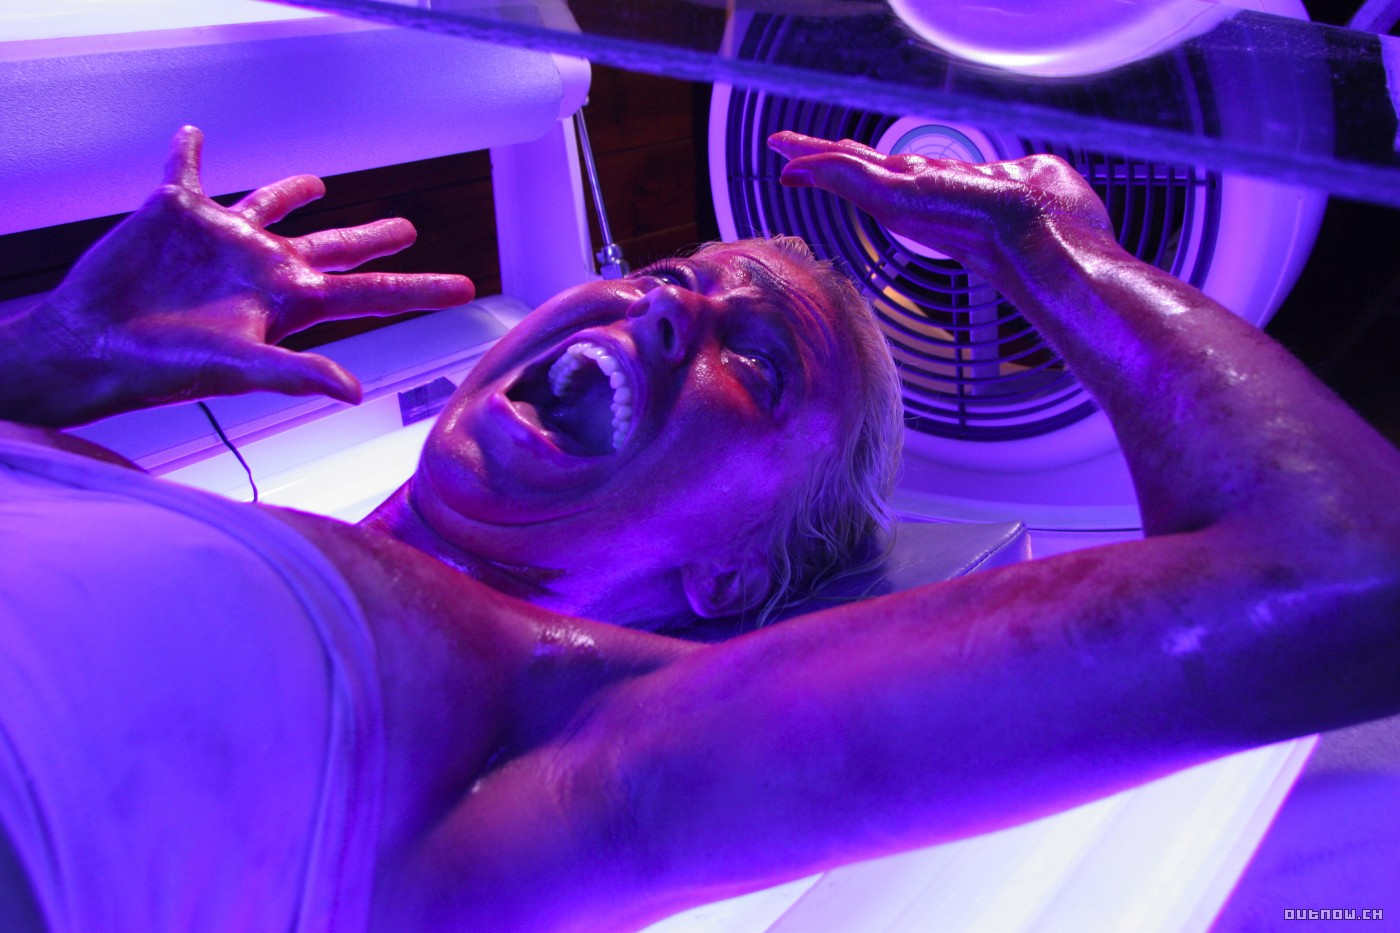 Girls nude in tanning beds